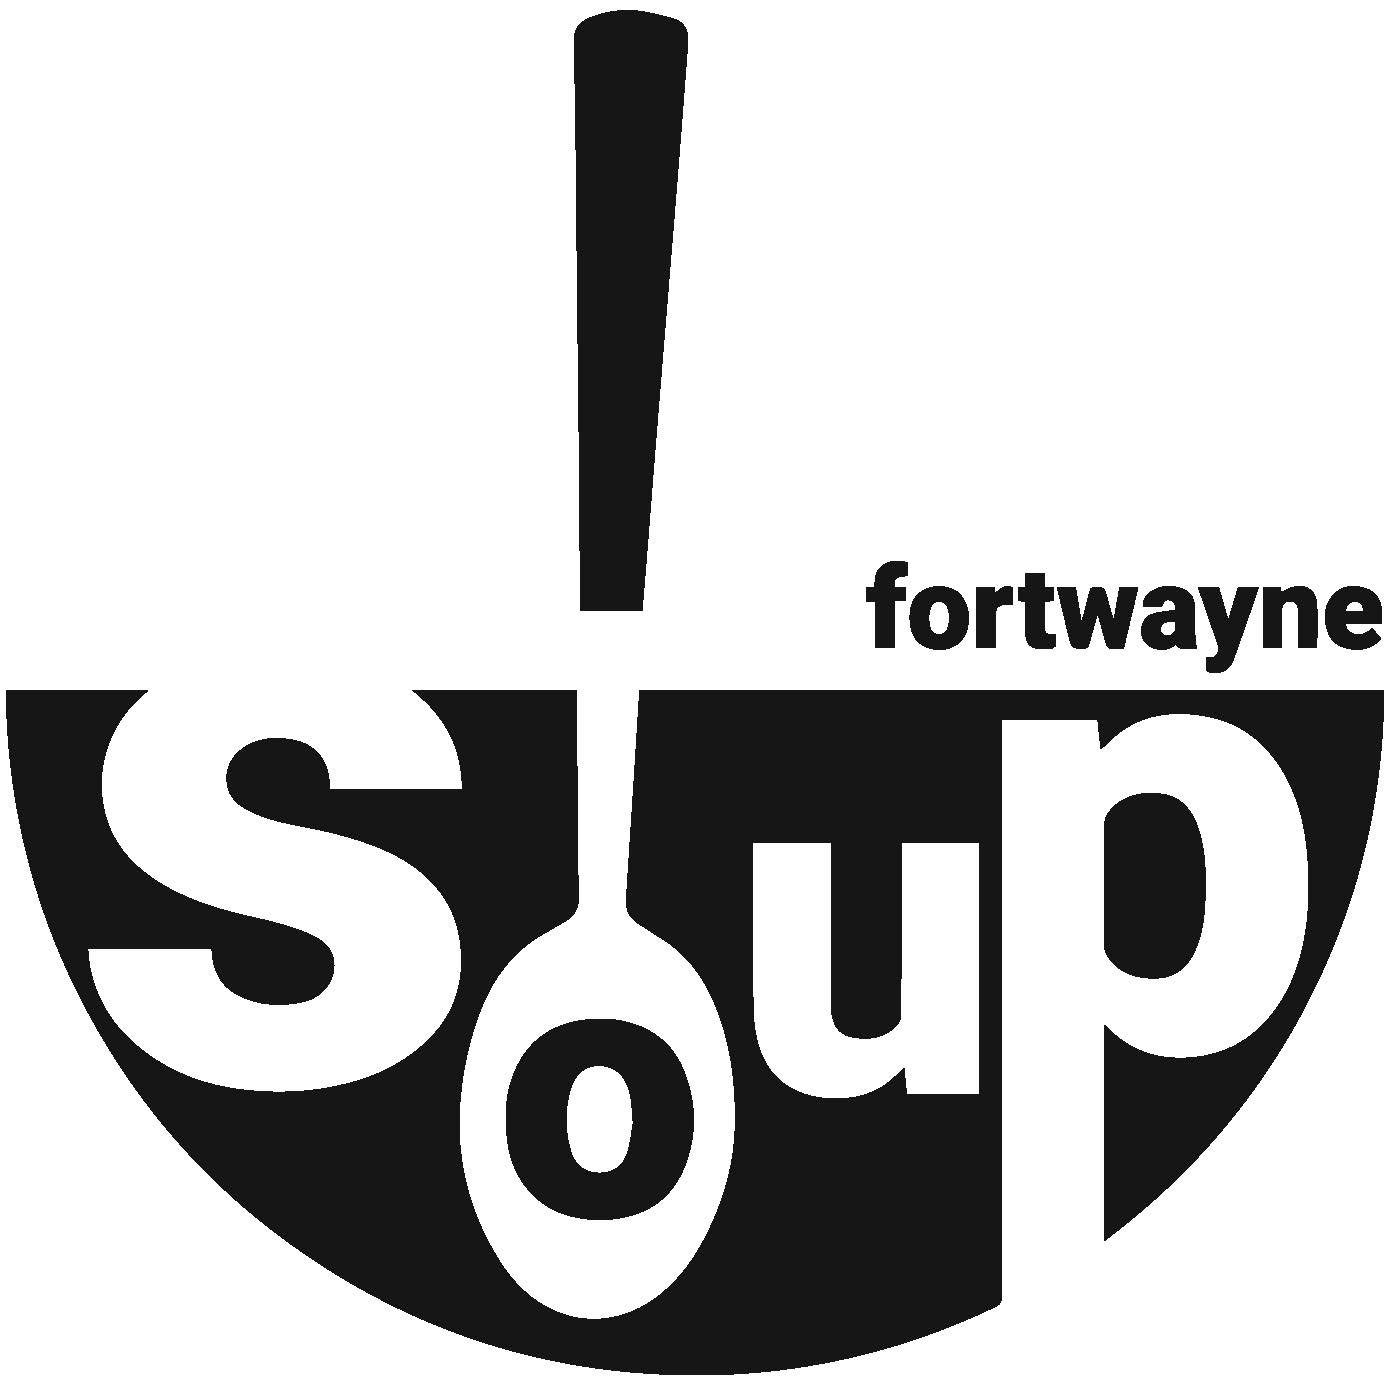 Souped Up: Fort Wayne SOUP.